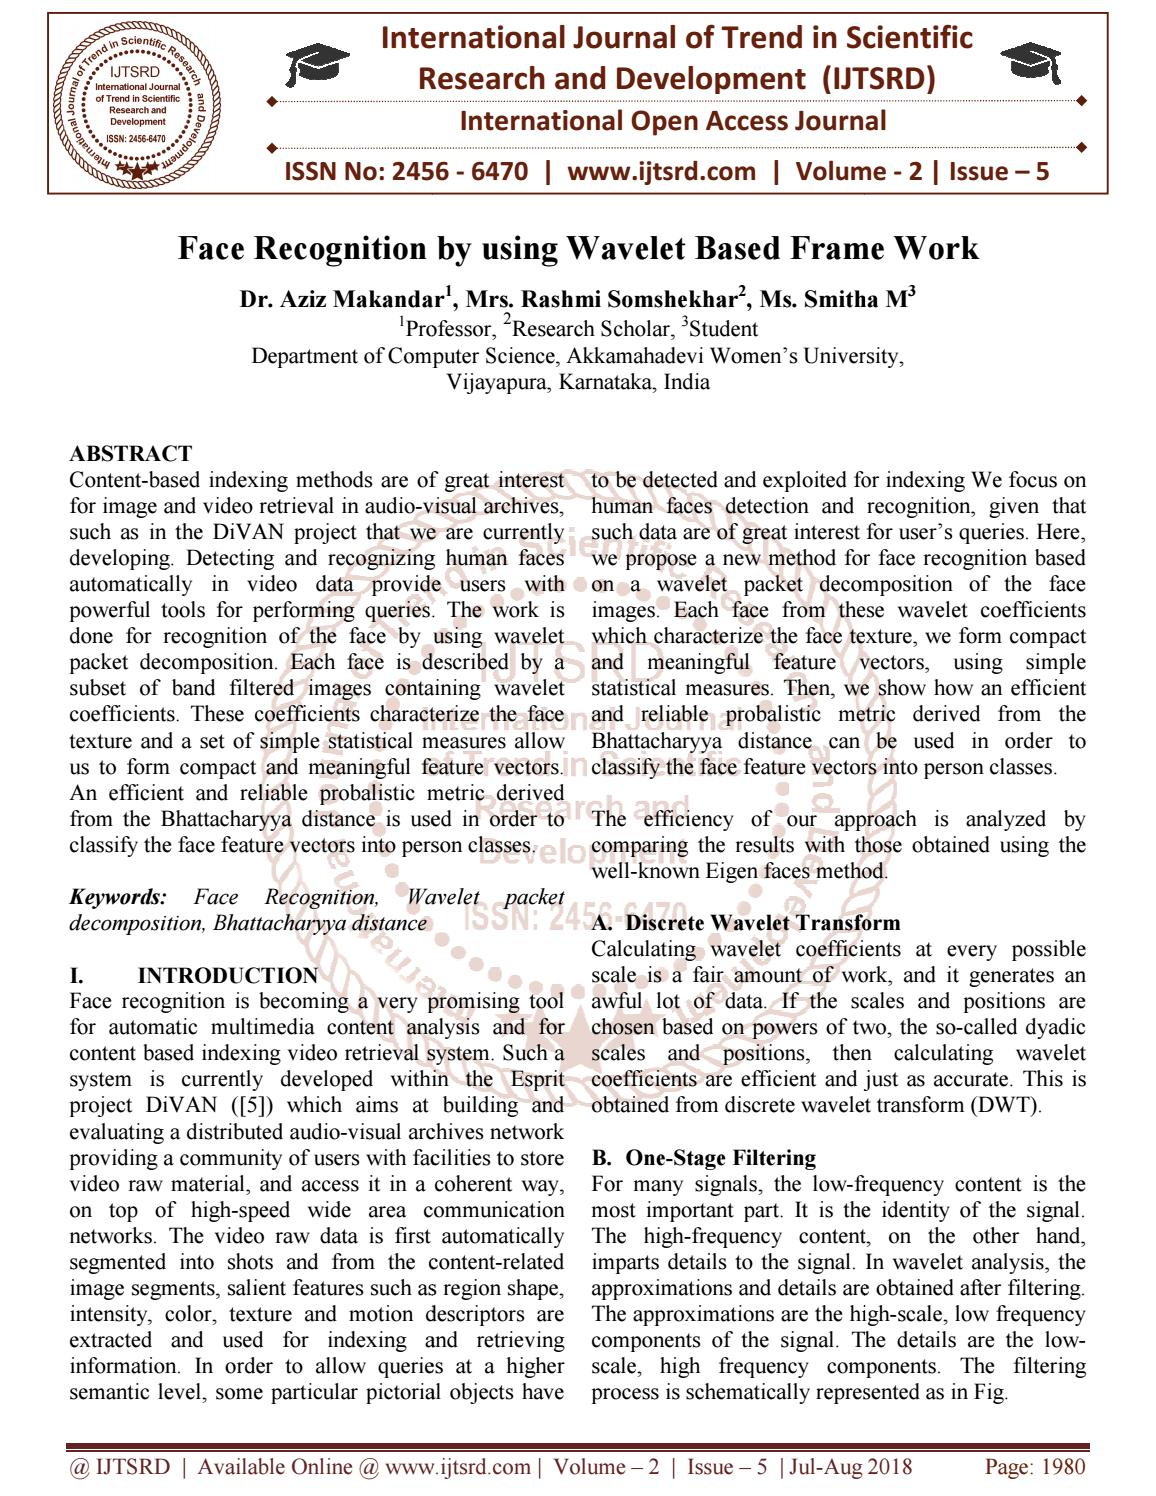 Face Recognition by using wavelet based frame work by International